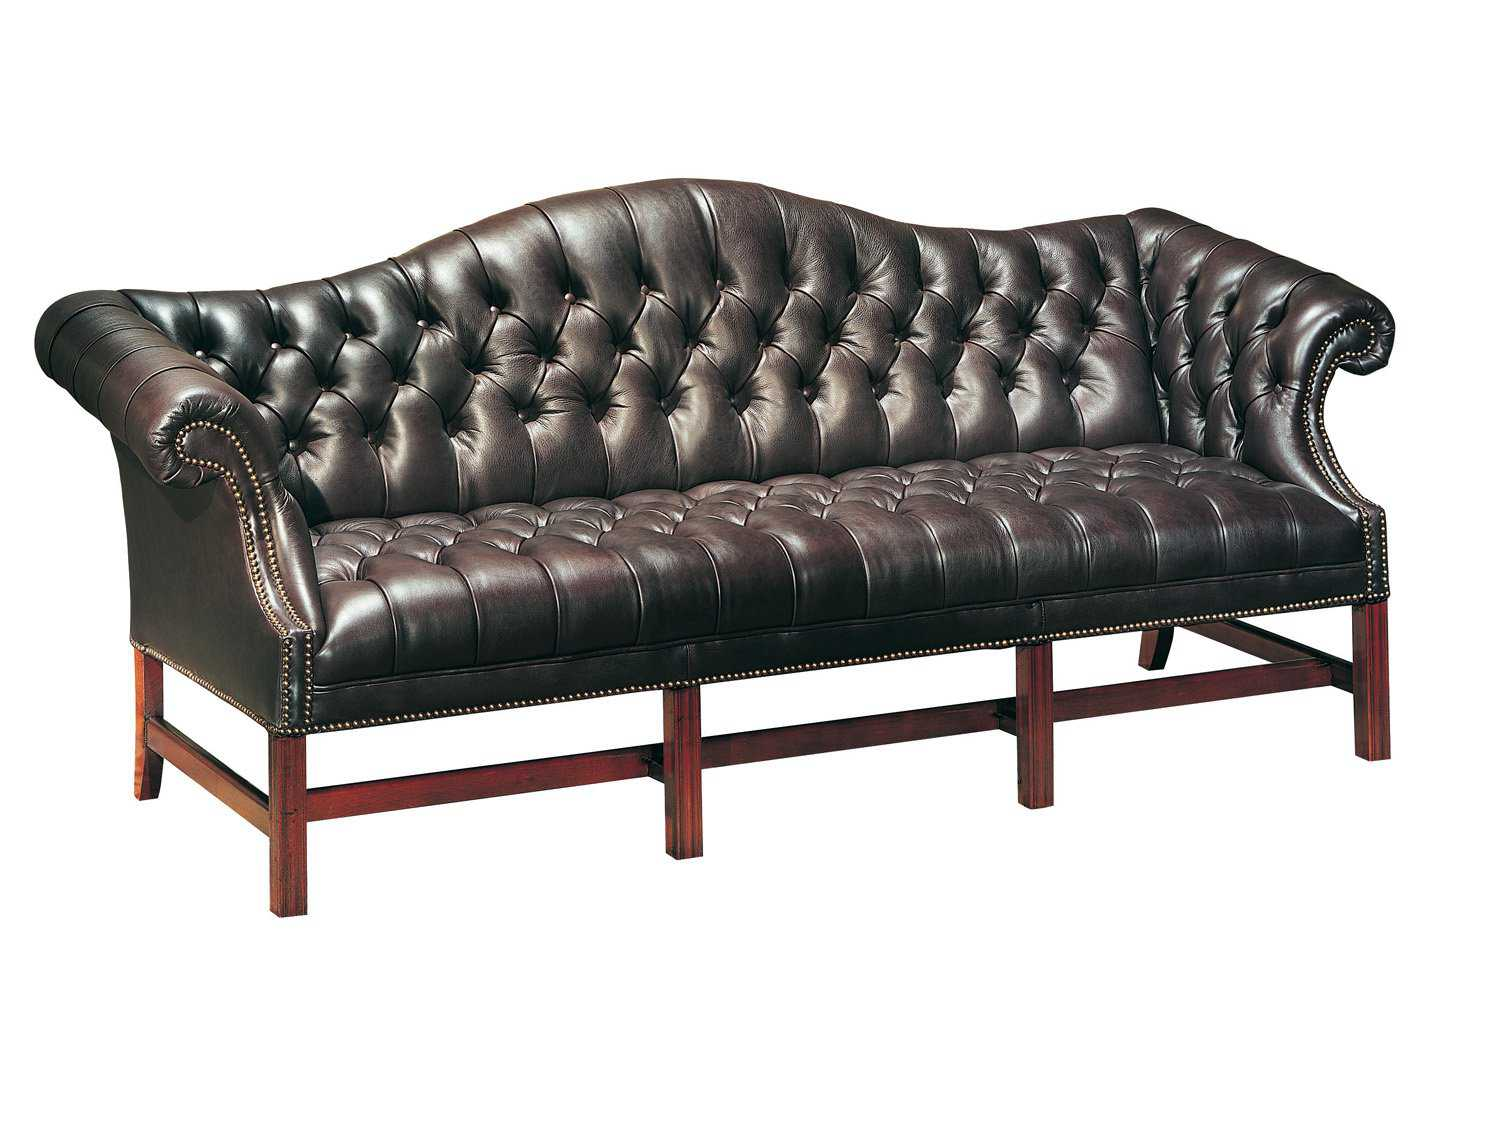 Stupendous Classic Leather Chippendale Tufted Sofa Machost Co Dining Chair Design Ideas Machostcouk